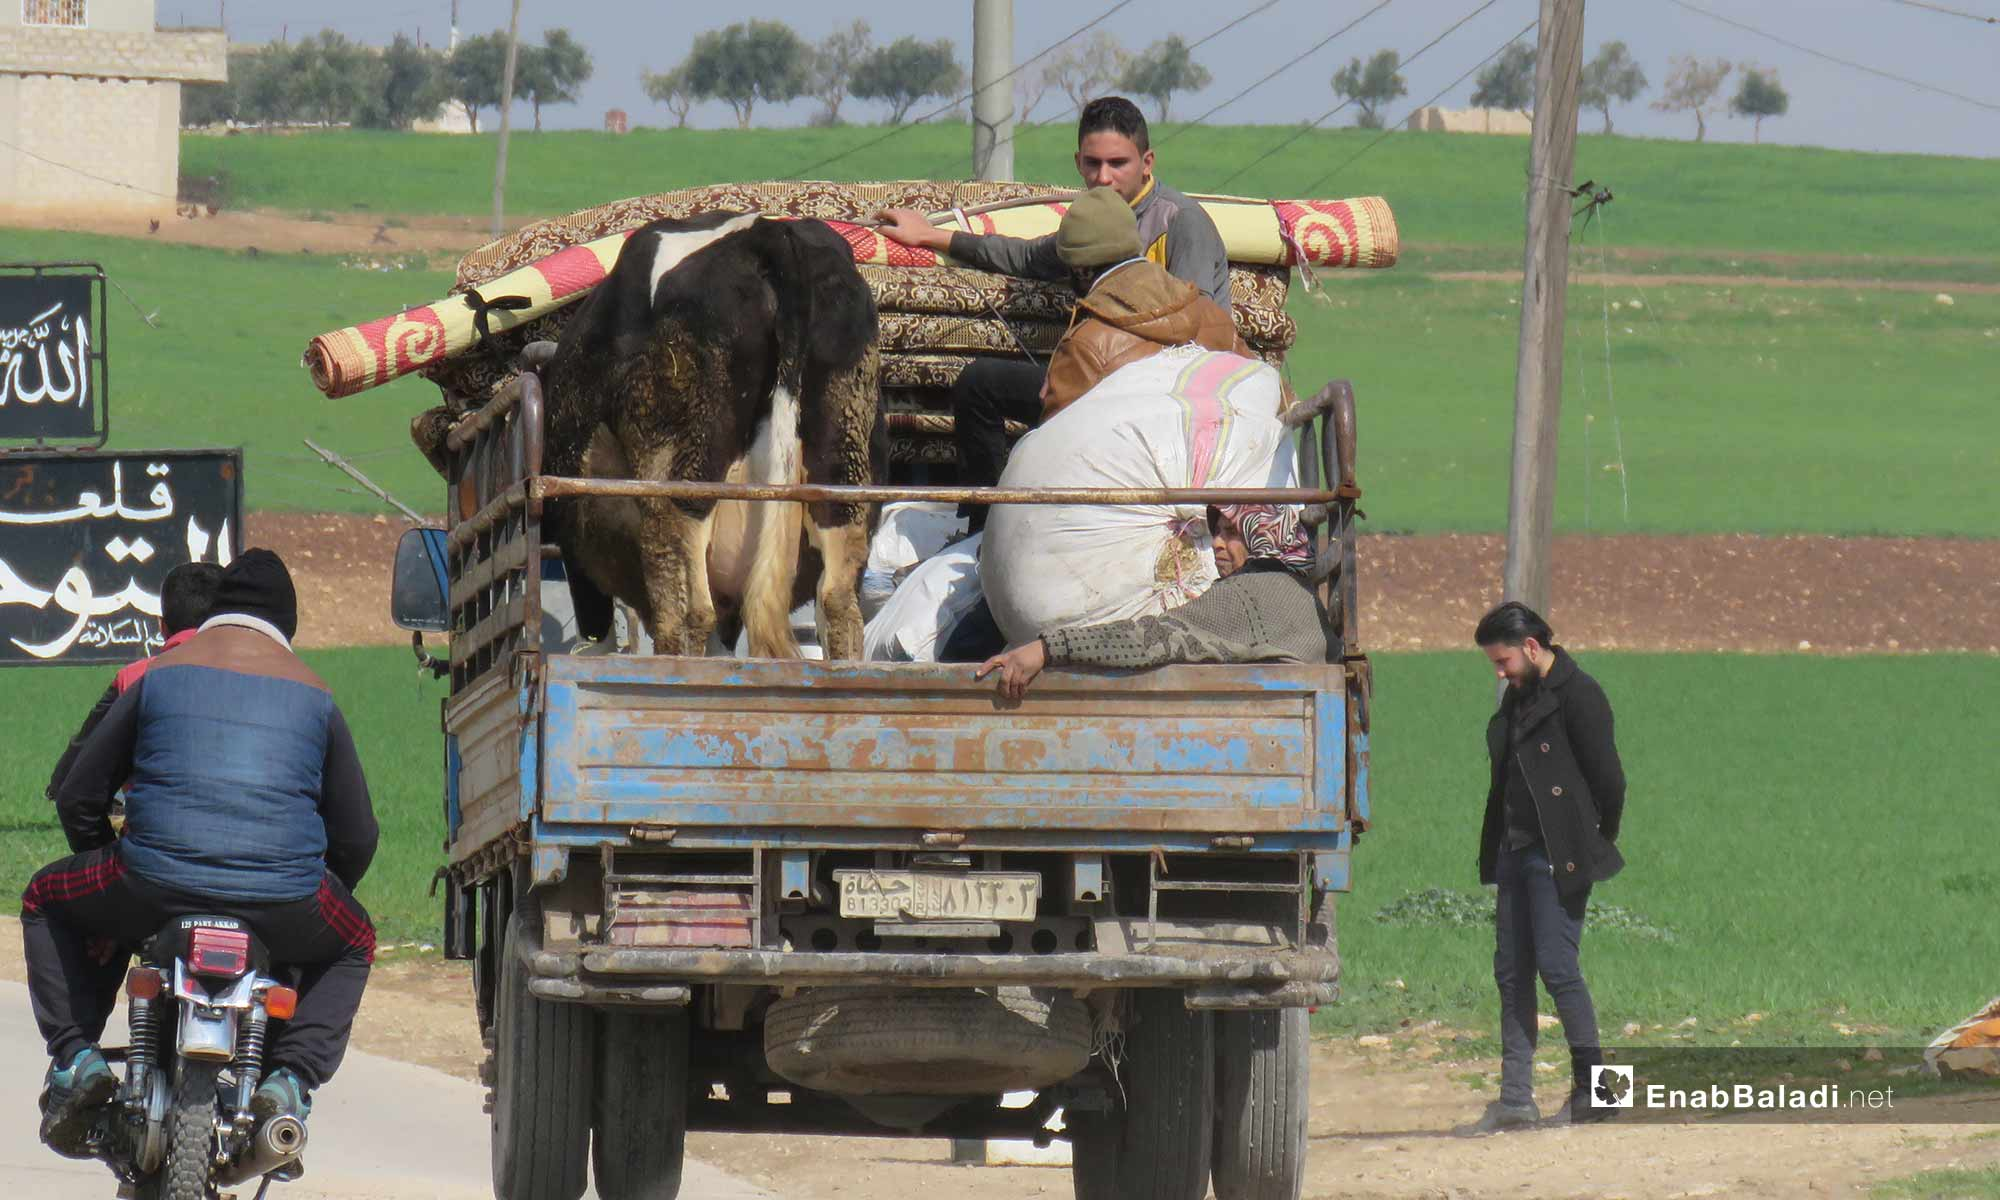 Qalaat al-Madiq's people are yet being displaced due to constant shelling in rural Hama – February 18, 2019 (Enab Baladi)